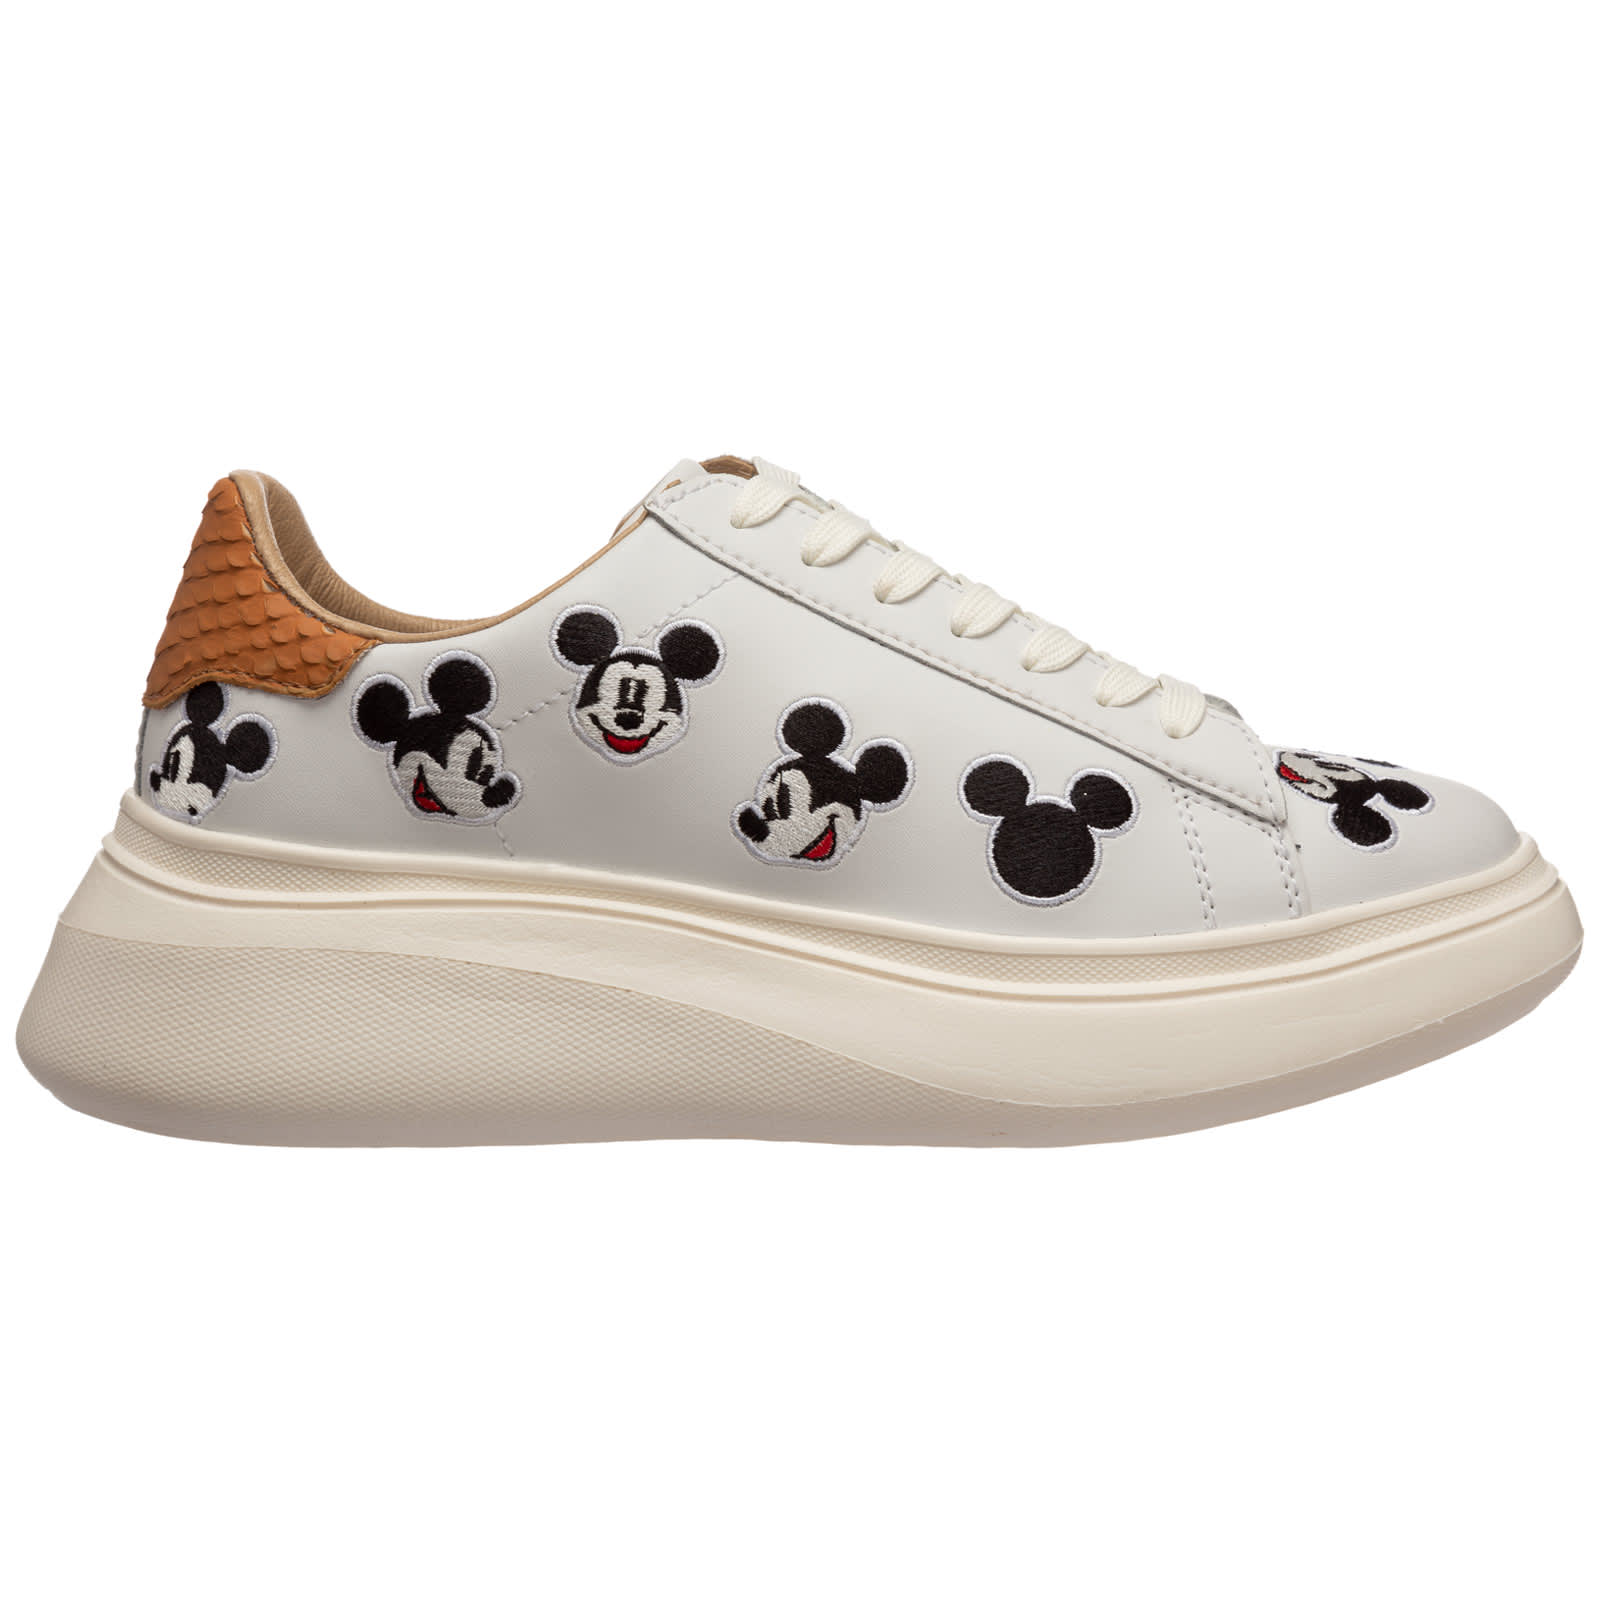 M.O.A. master of arts Moa Master Of Arts Double Gallery Sneakers